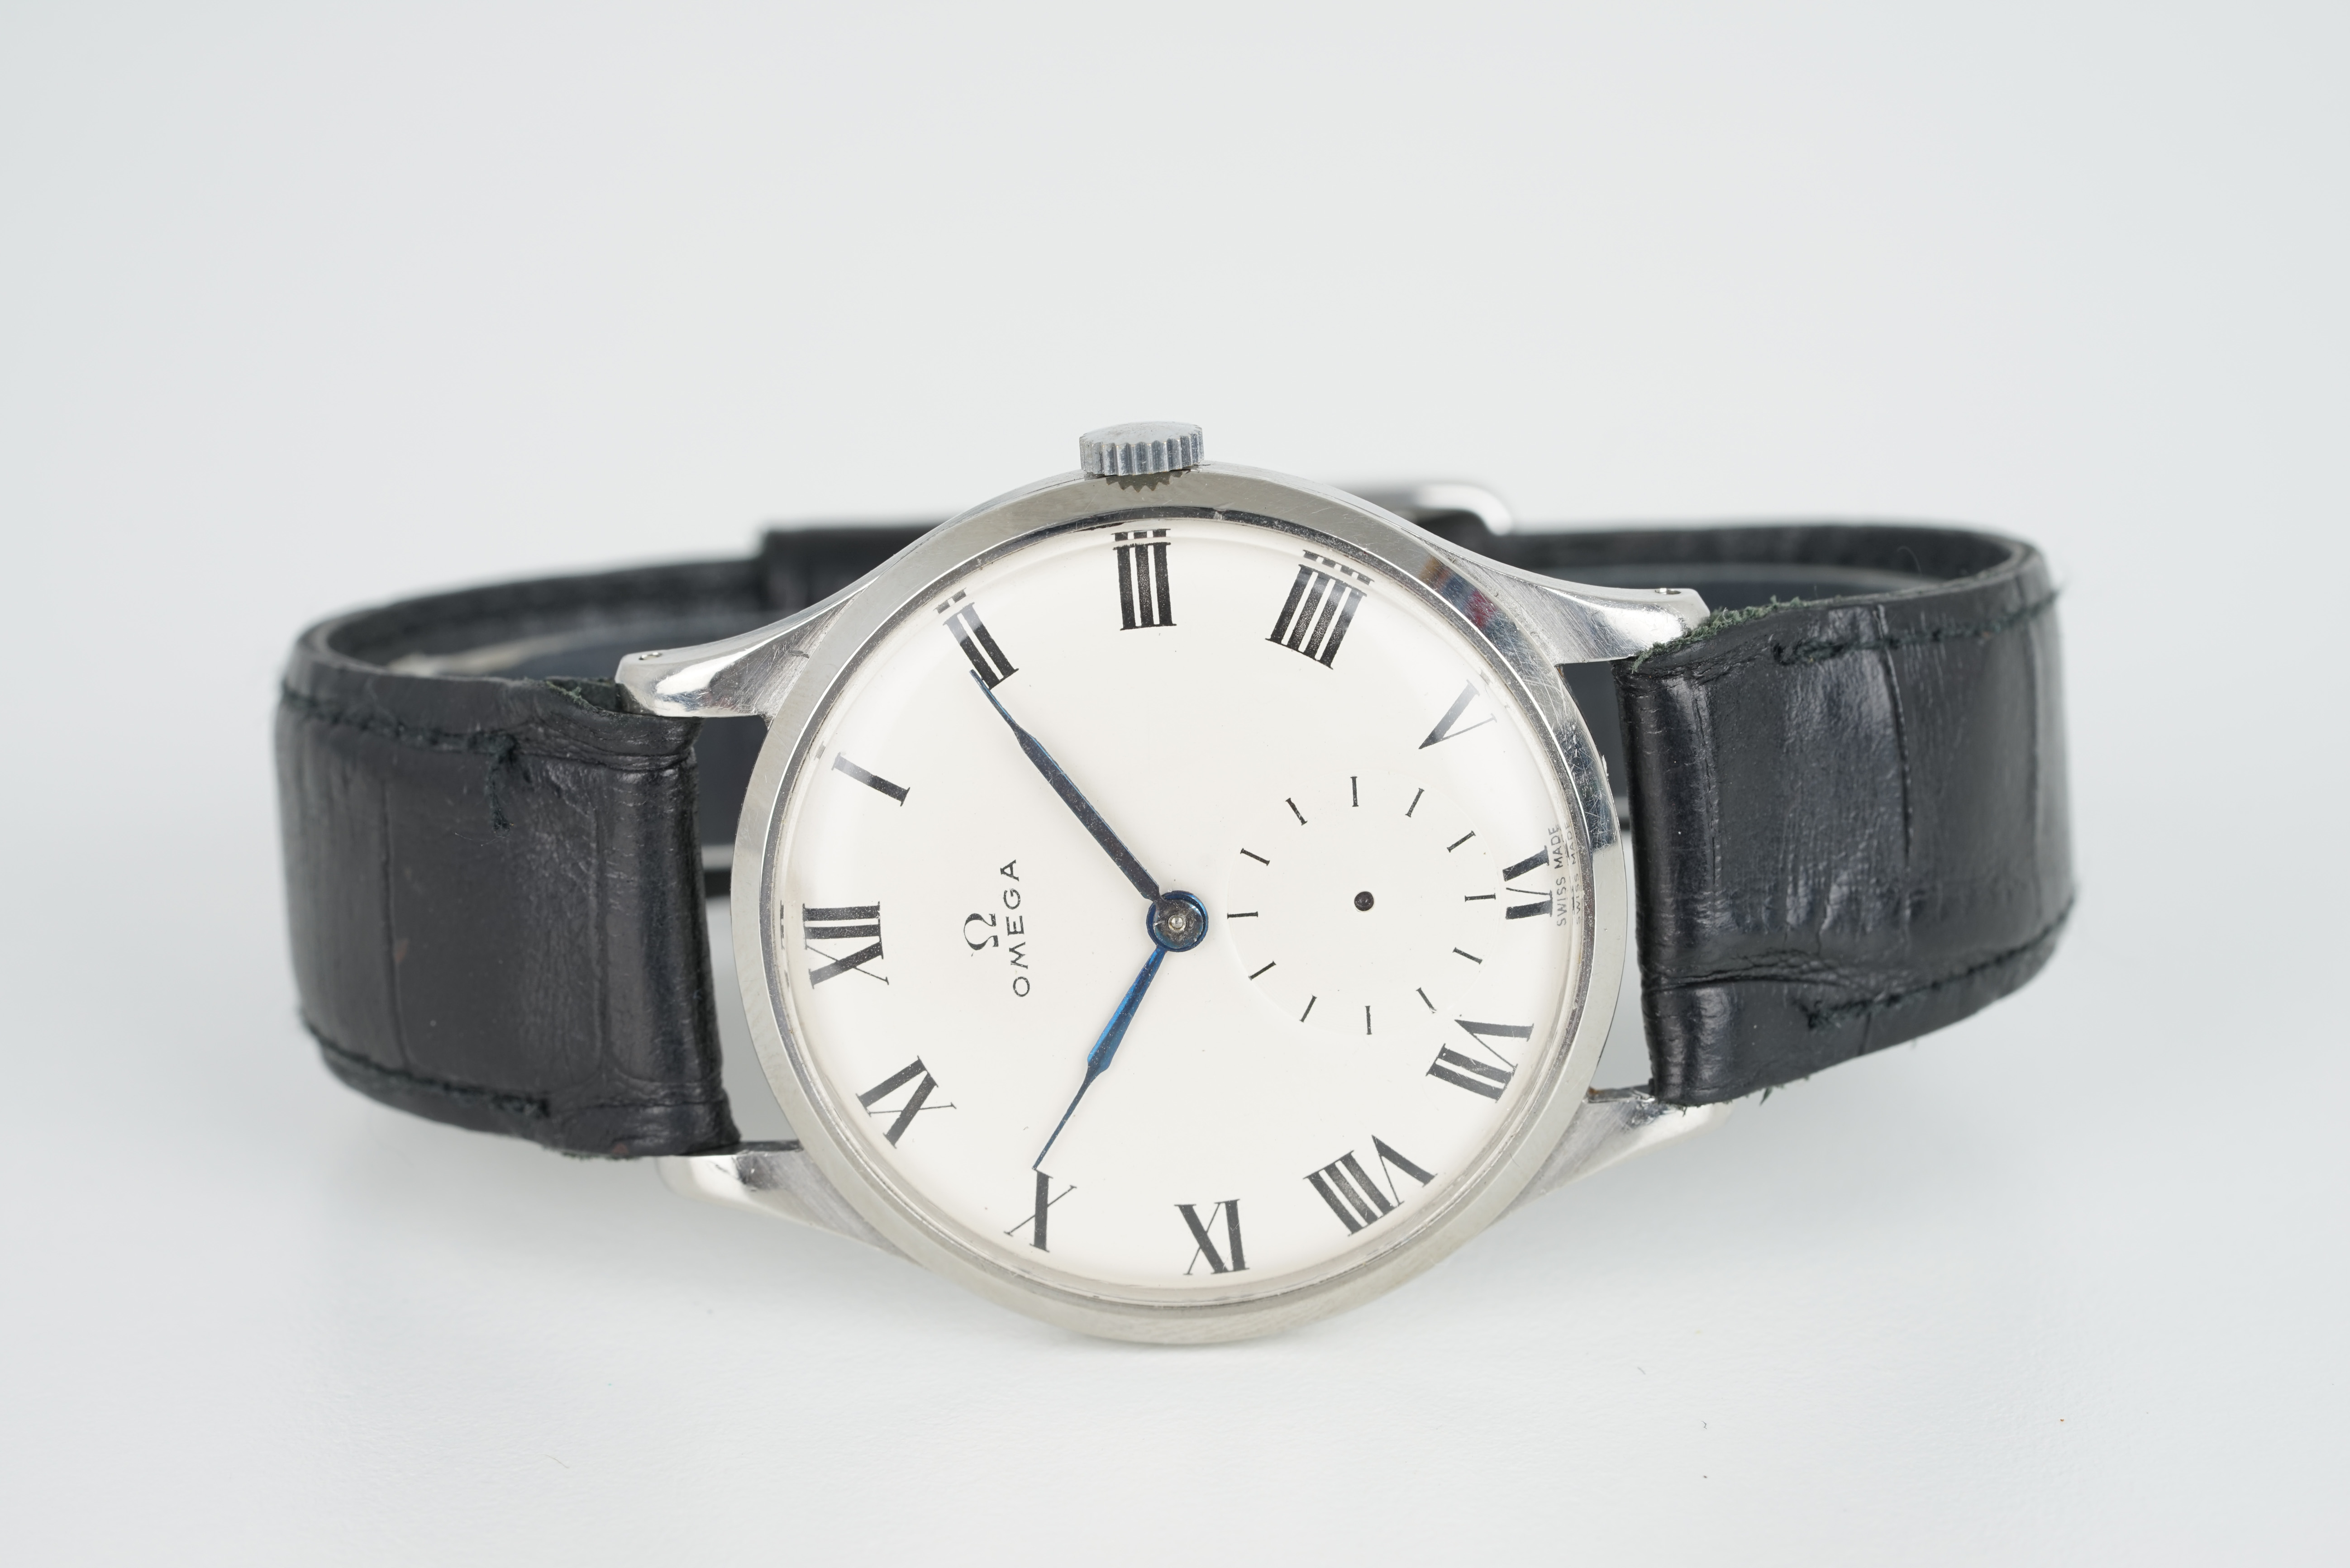 GENTLEMENS OMEGA OVERSIZE WRISTWATCH, circular white dial with roman numeral hour markers and hands,